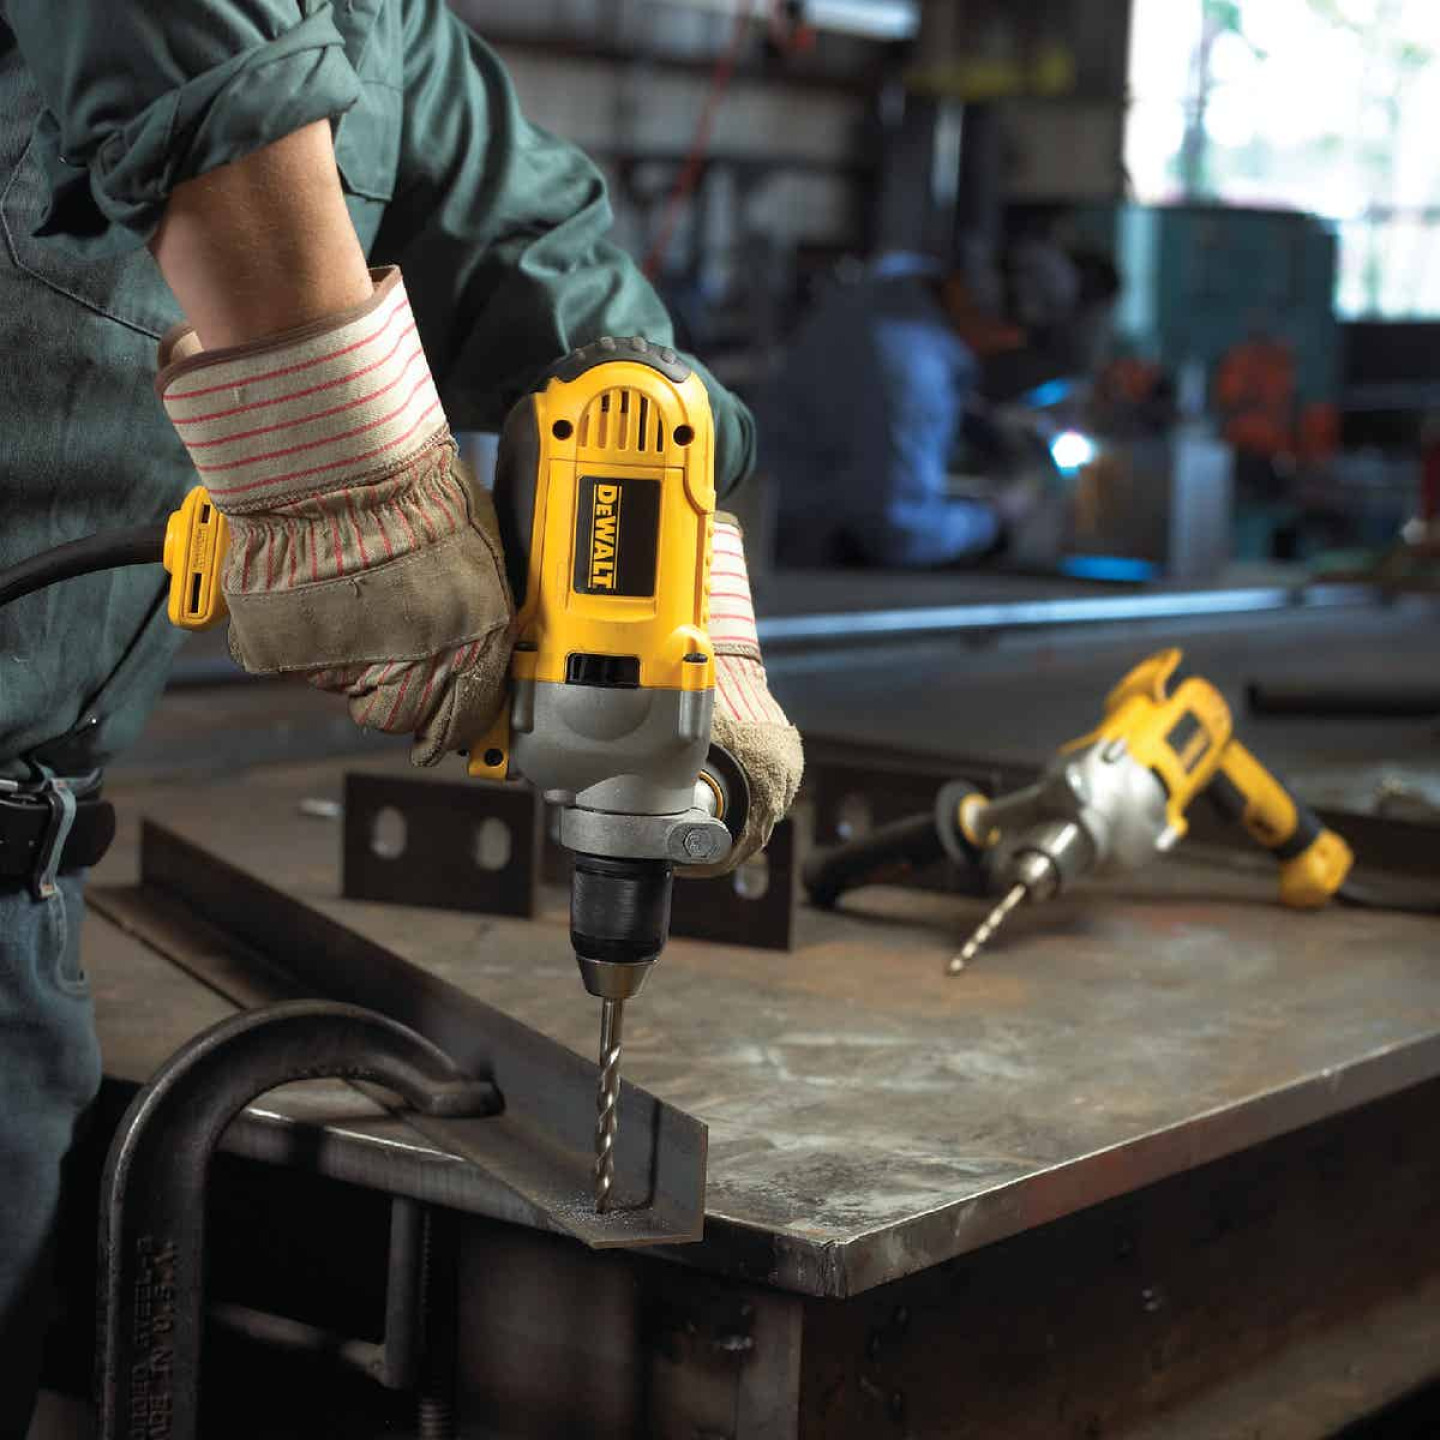 DeWalt 1/2 In. 10-Amp Keyless Electric Drill with Mid-Handle Grip Image 2